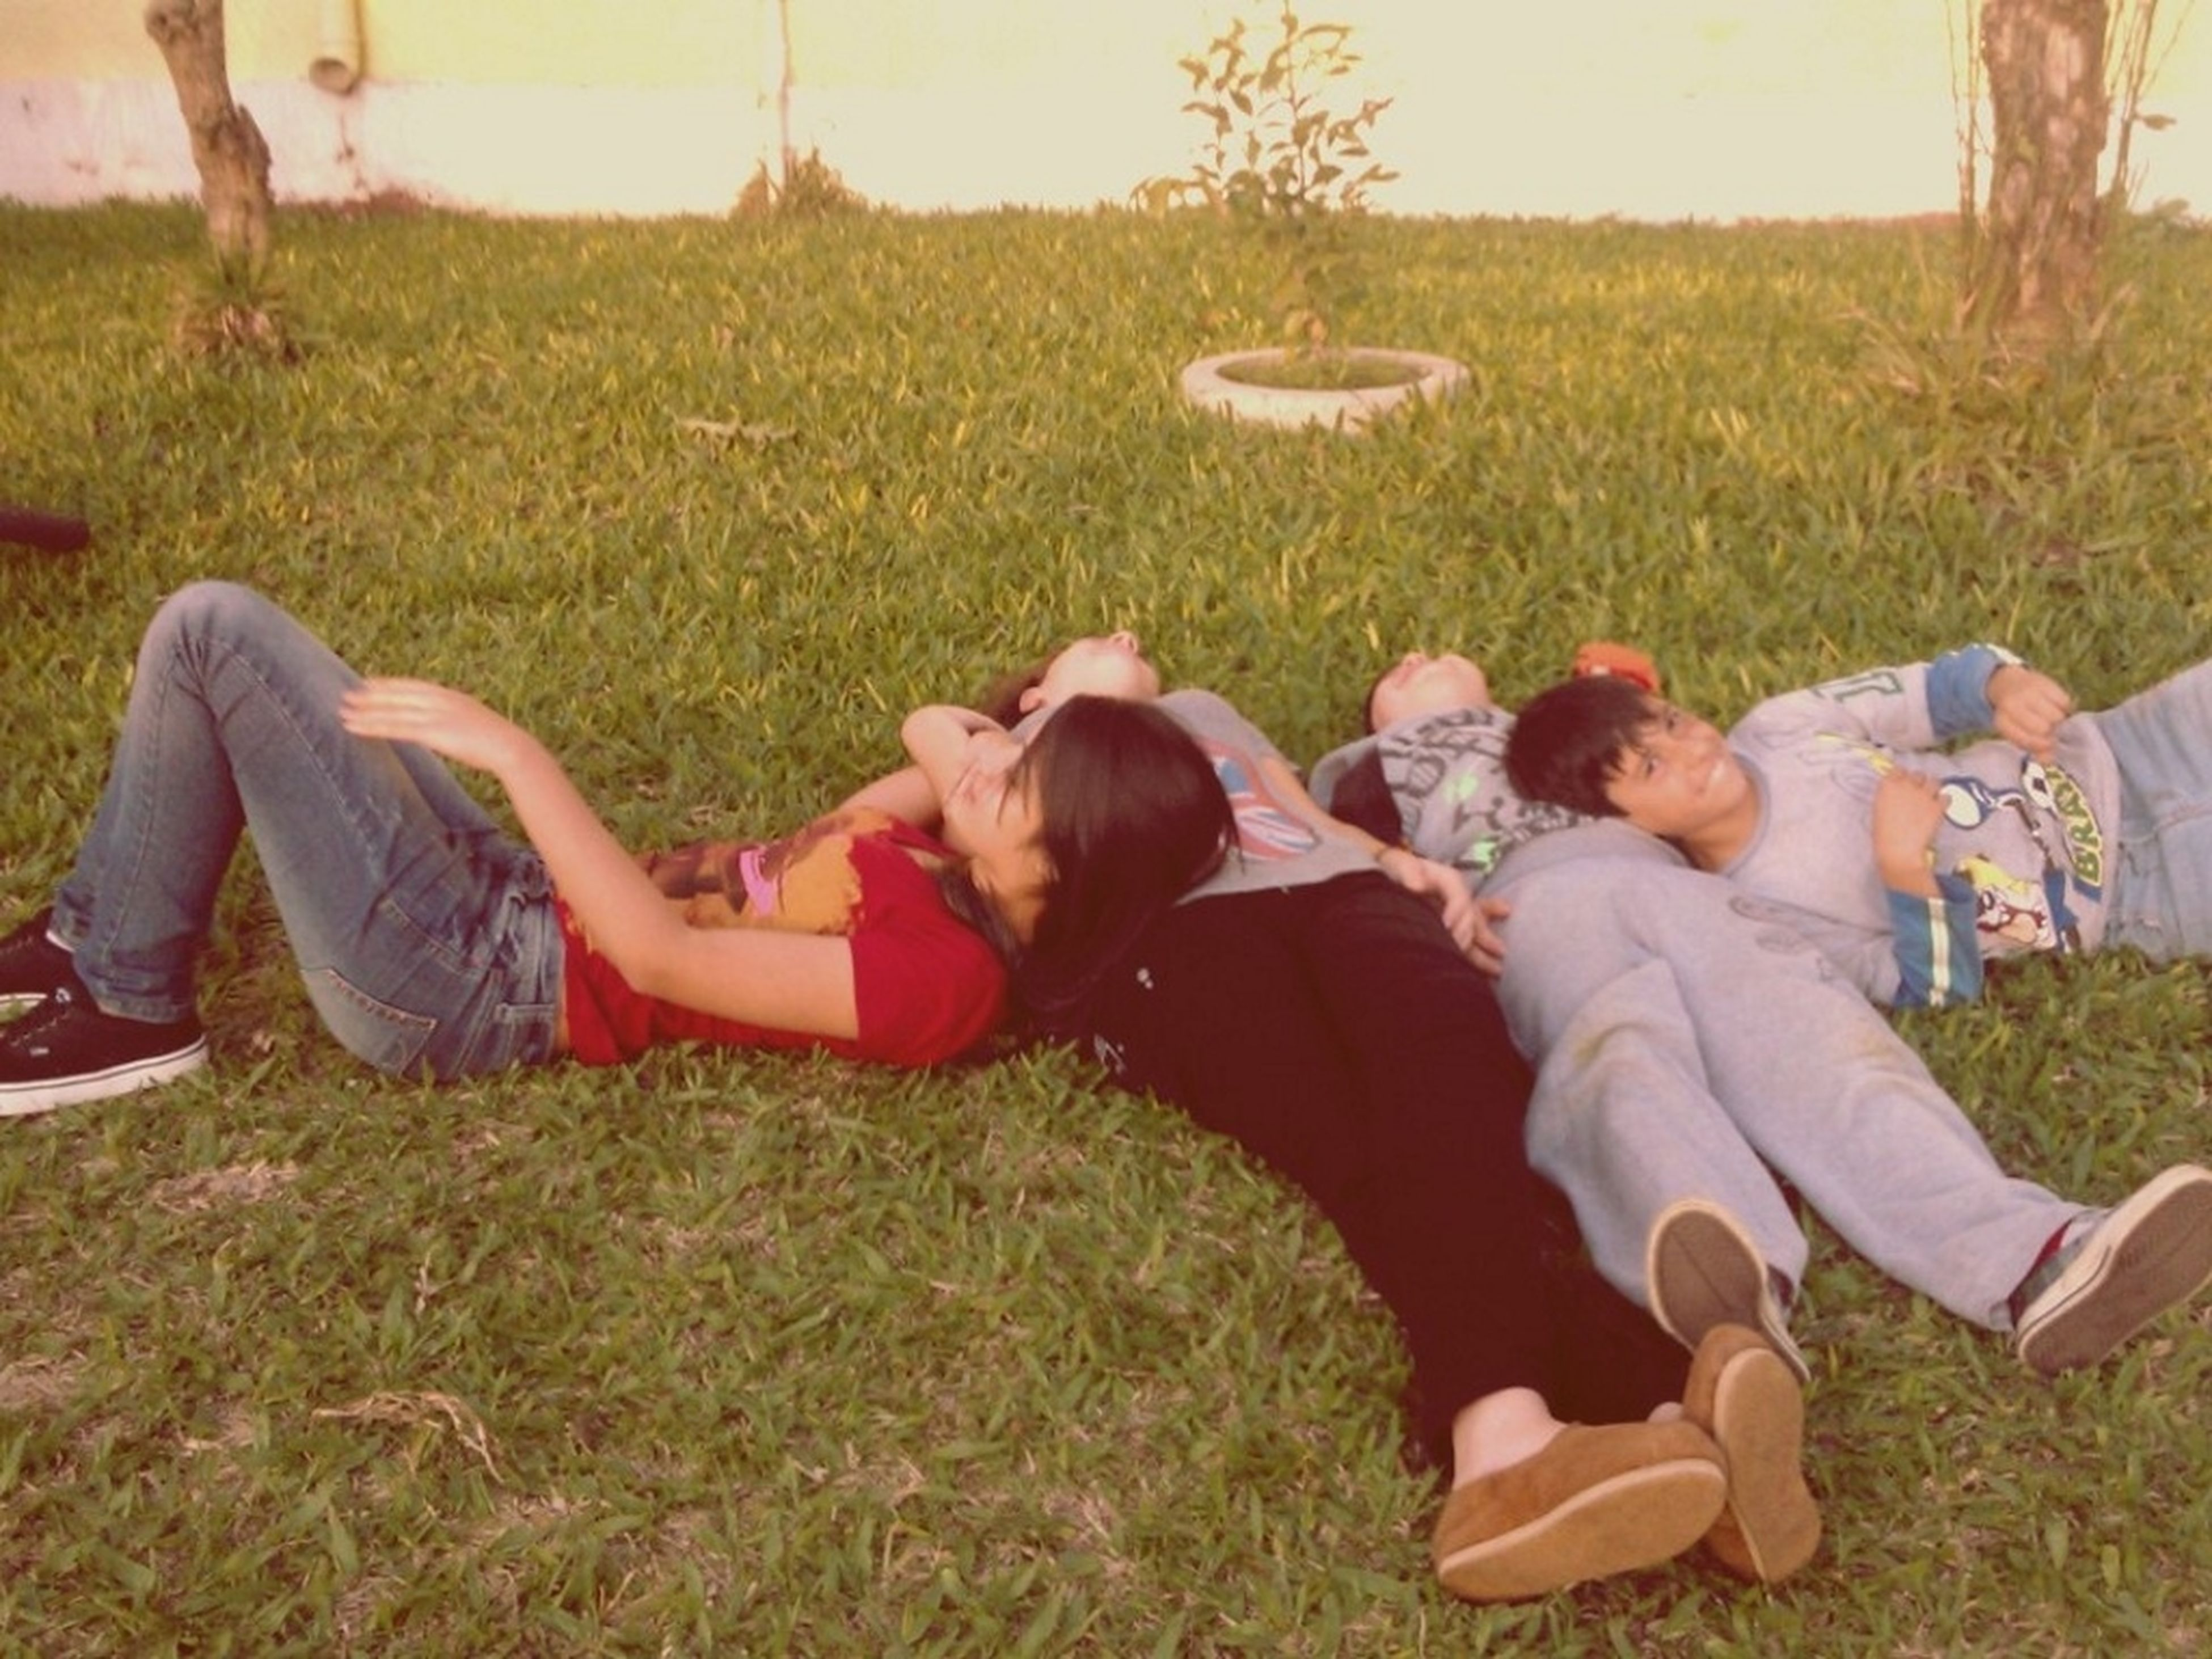 grass, sitting, relaxation, leisure activity, togetherness, lifestyles, bonding, field, casual clothing, love, resting, lying down, person, friendship, grassy, men, relaxing